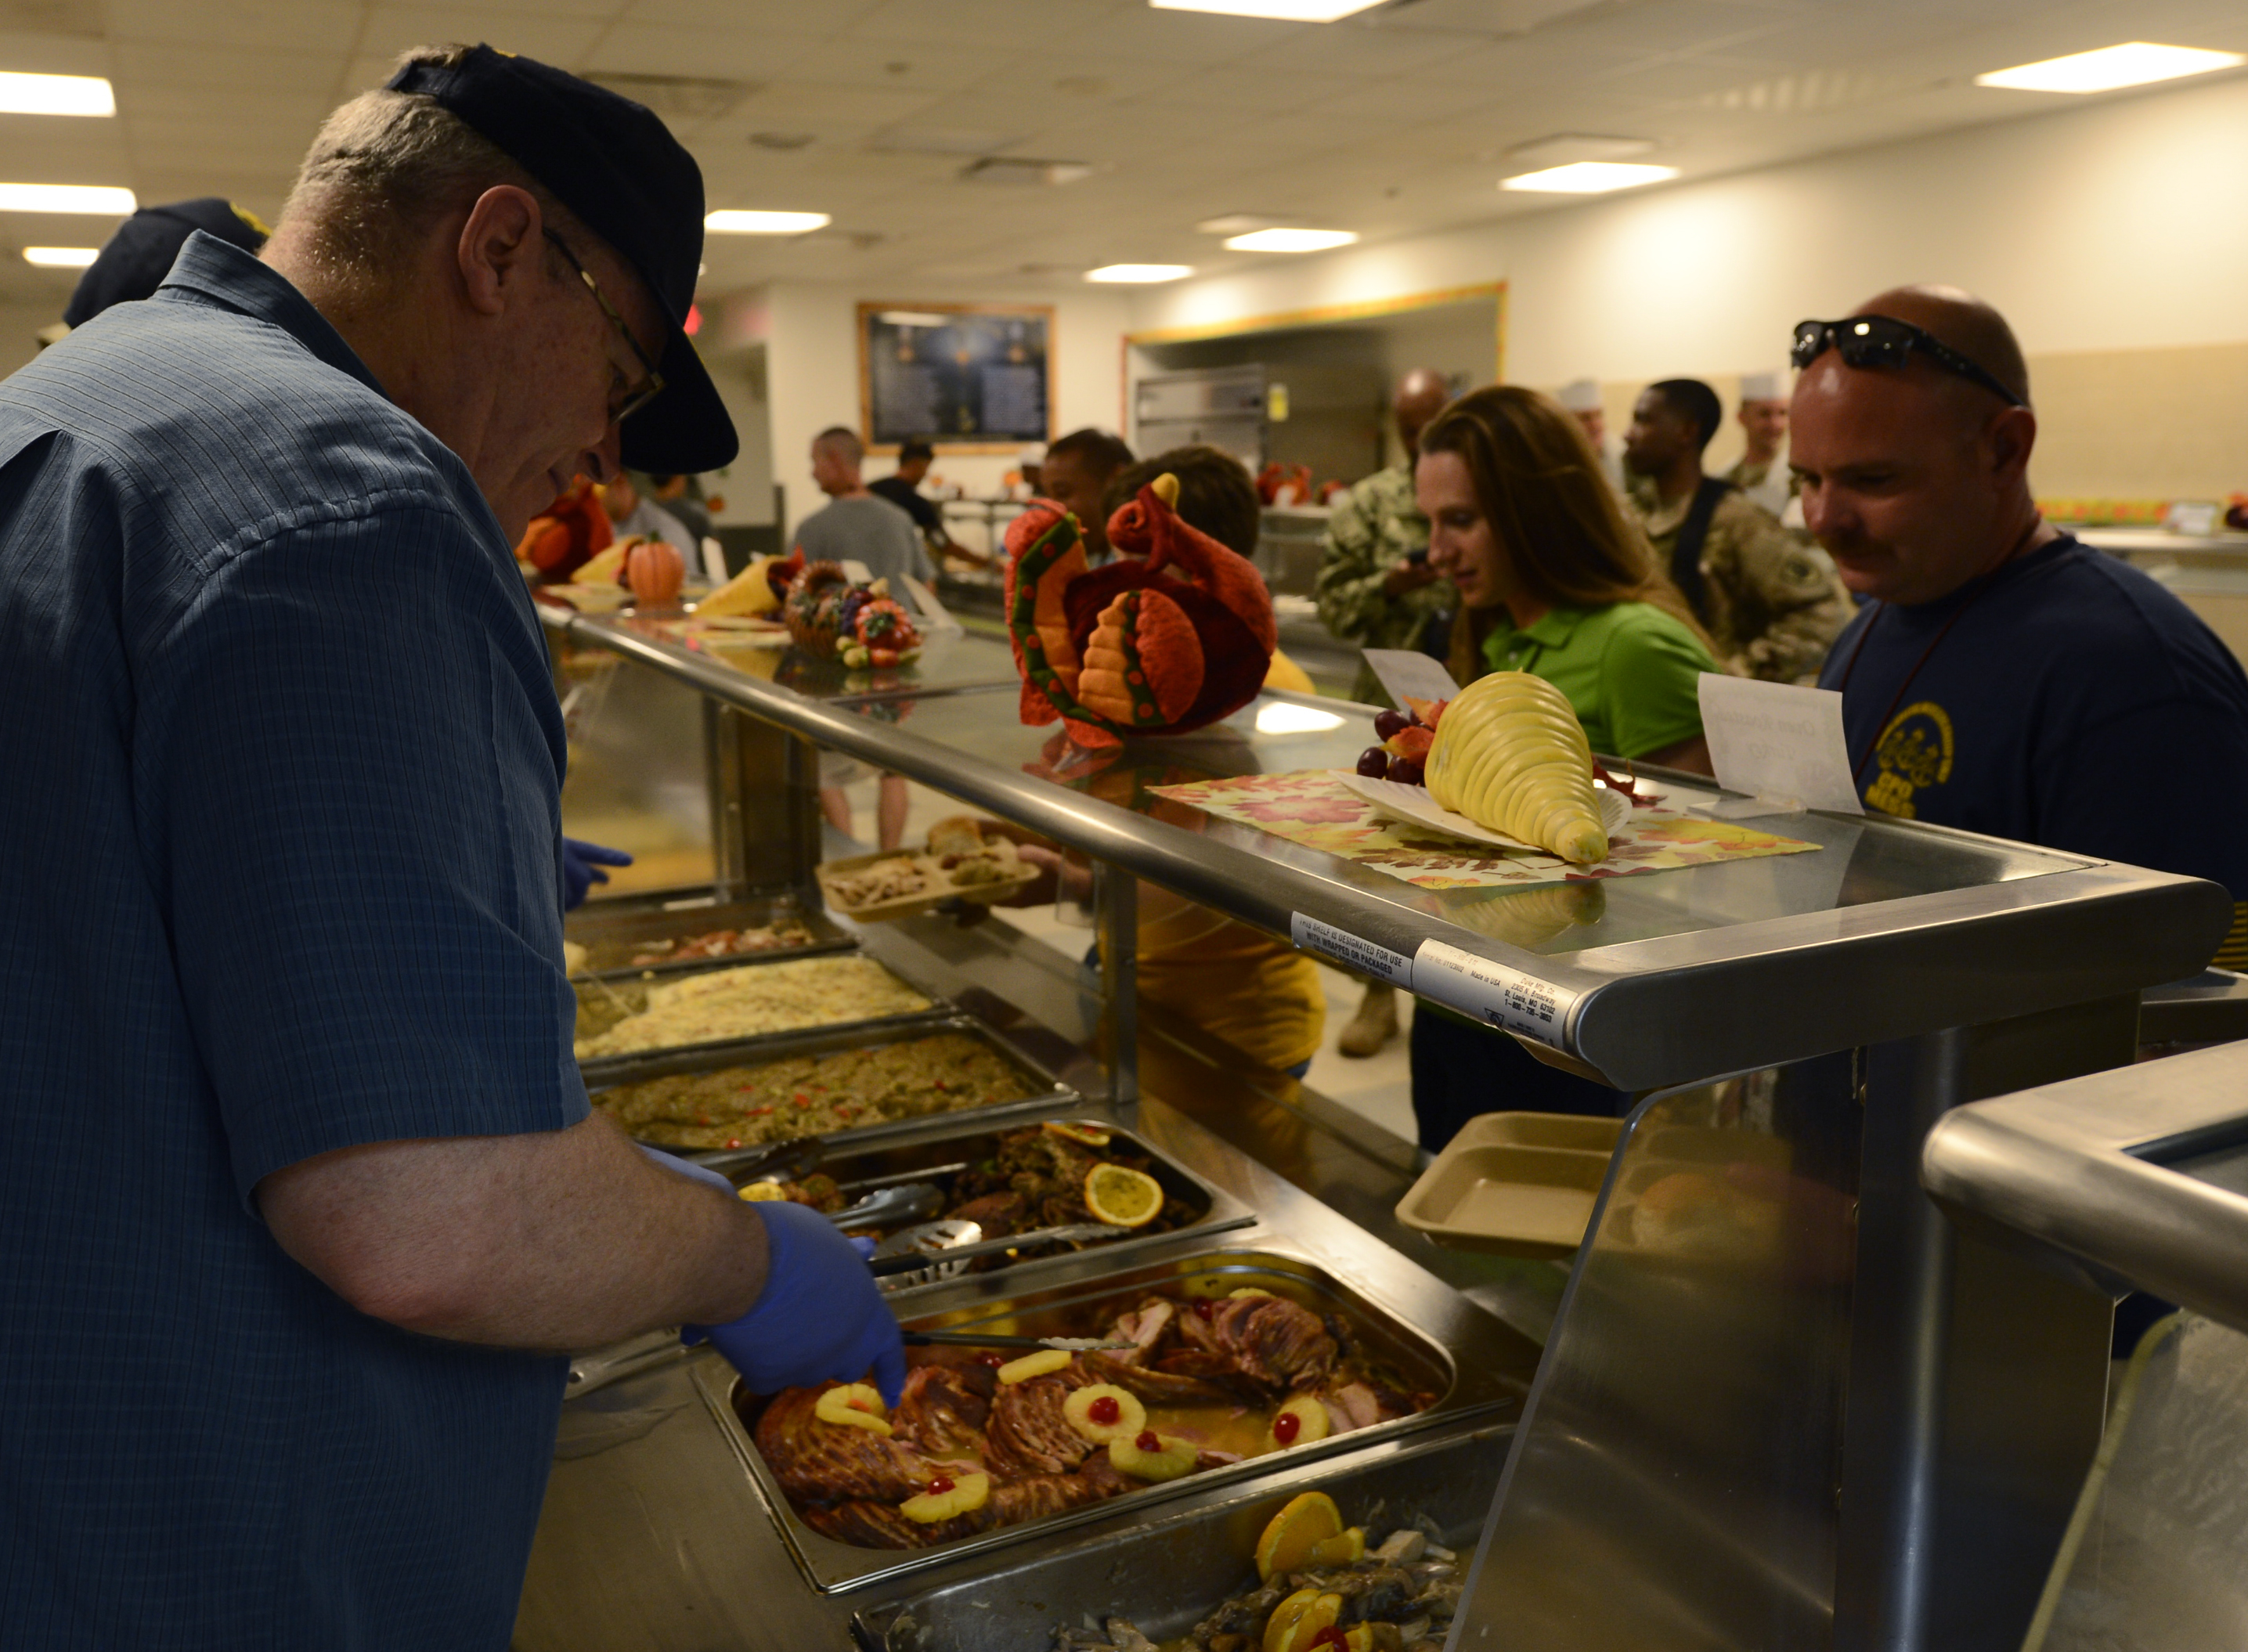 Deputy Secretary of Defense Bob Work serves Thanksgiving lunch to members of Camp Lemonnier, Djibouti, Nov. 26, 2015. After visiting much of the base, Work took the opportunity to sit down and eat a Thanksgiving meal with members of the camp. The group discussed changes across the Department of Defense and their deployment experiences. (U.S. Air Force photo by Senior Airman Peter Thompson)